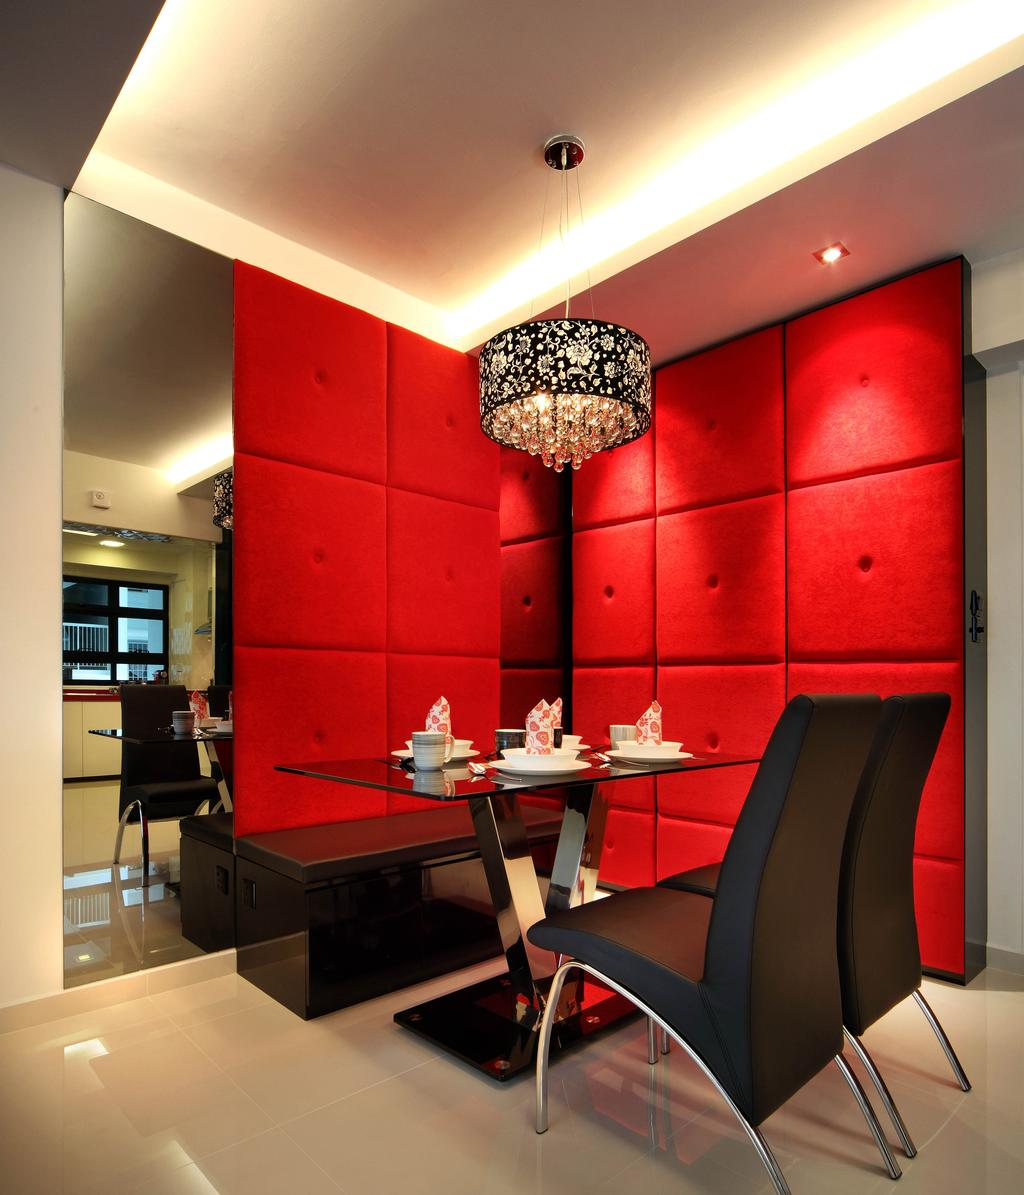 Transitional, HDB, Dining Room, Sengkang West Avenue (Block 438B), Interior Designer, De Exclusive Design Group, Red, Panels, Dining Table, Dining Chairs, Pendant Lamp, Hanging Lamp, Cove Lighting, Mirror, Cushion Wall, Upholstered Wall, Chair, Furniture, Indoors, Interior Design, Room, Restaurant